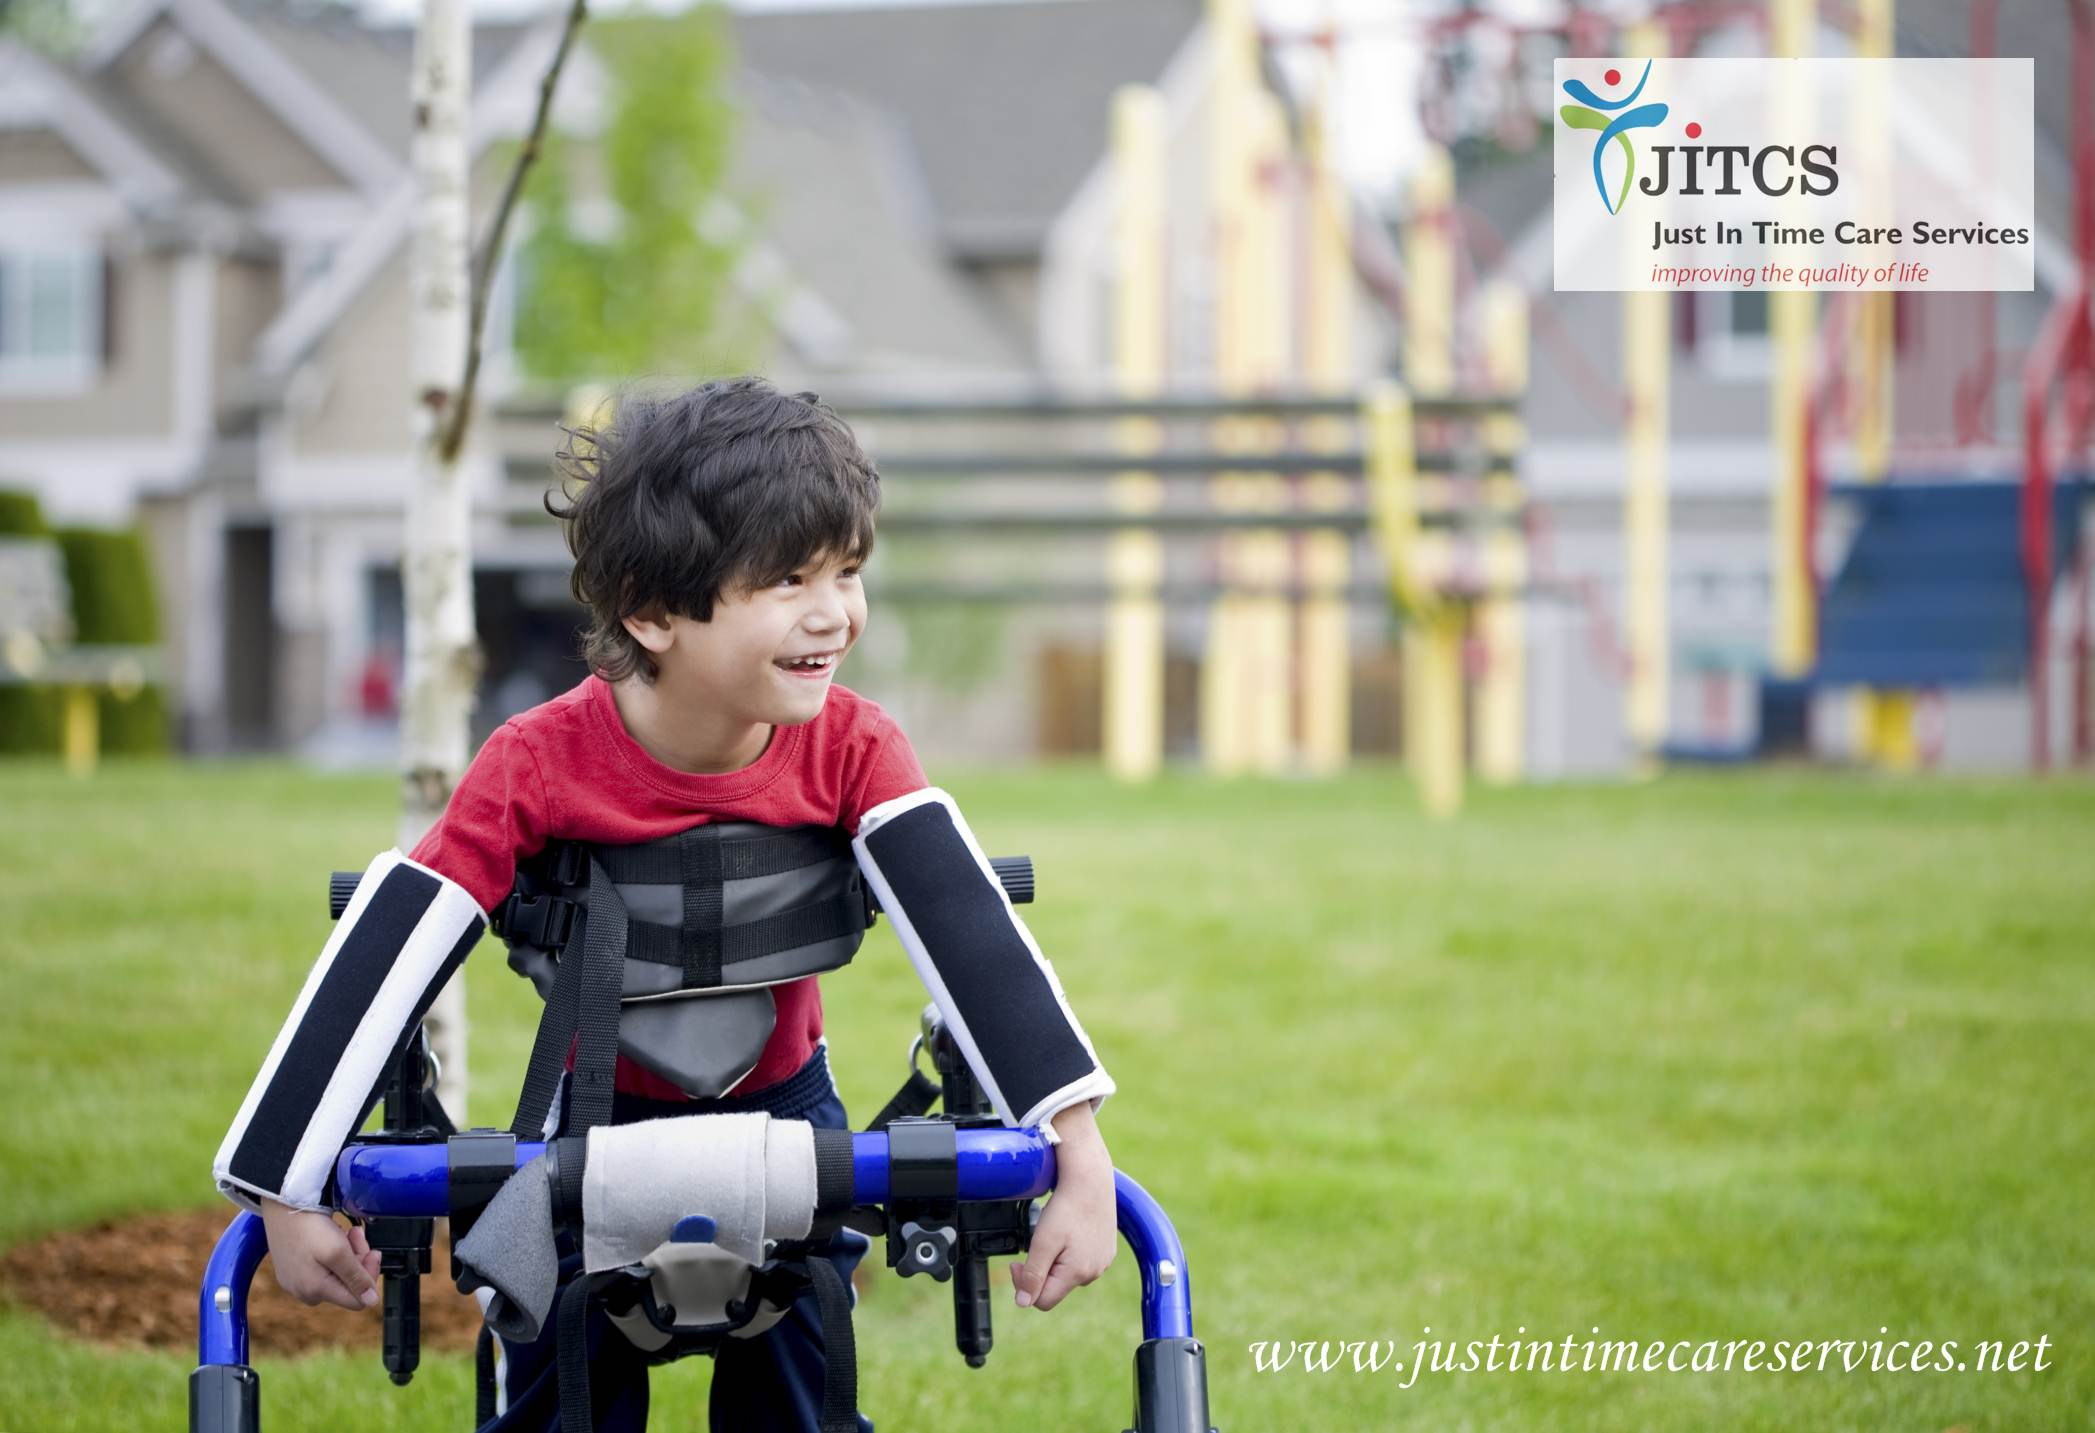 Disabled four year old boy standing in walker by playground